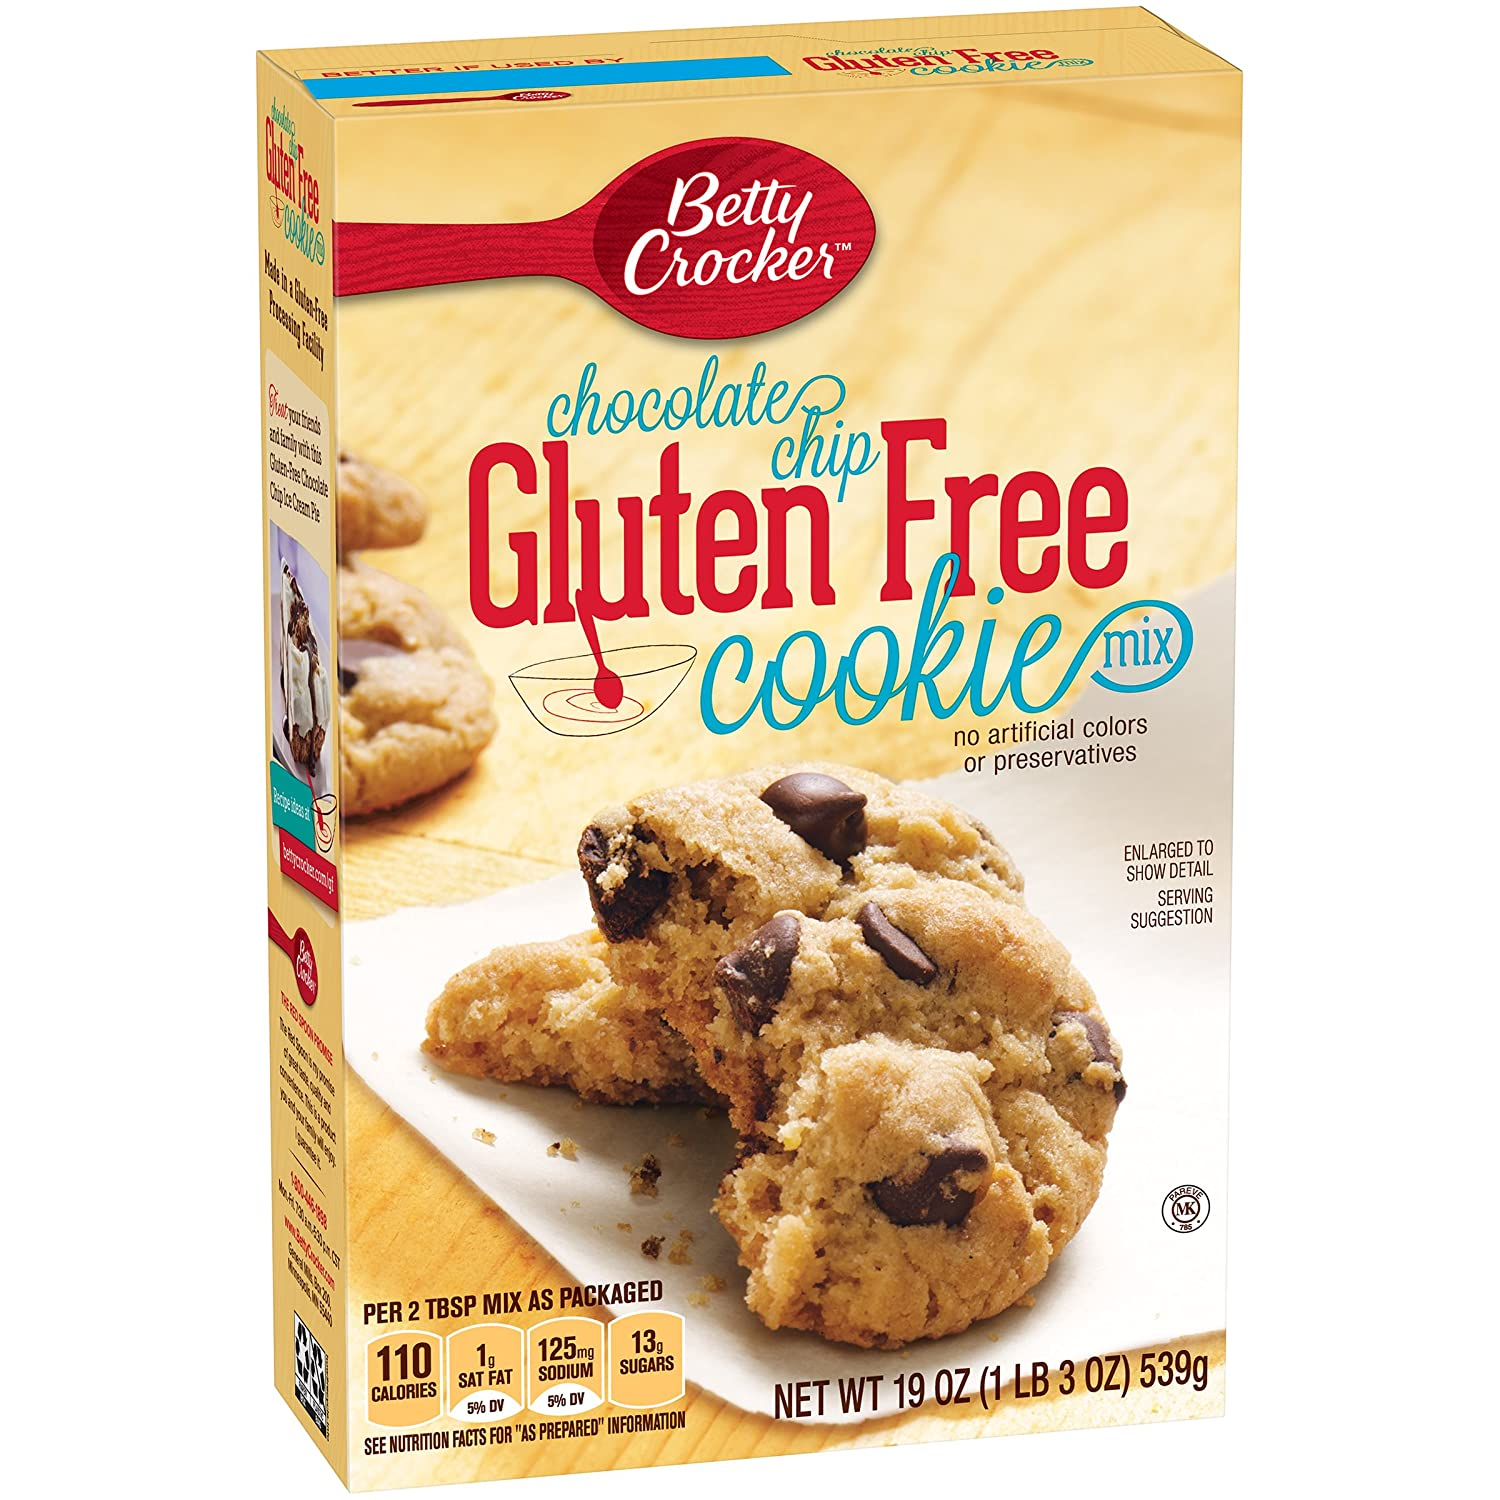 Amazon.com : Betty Crocker Gluten Free Cookie Mix Chocolate Chip ...